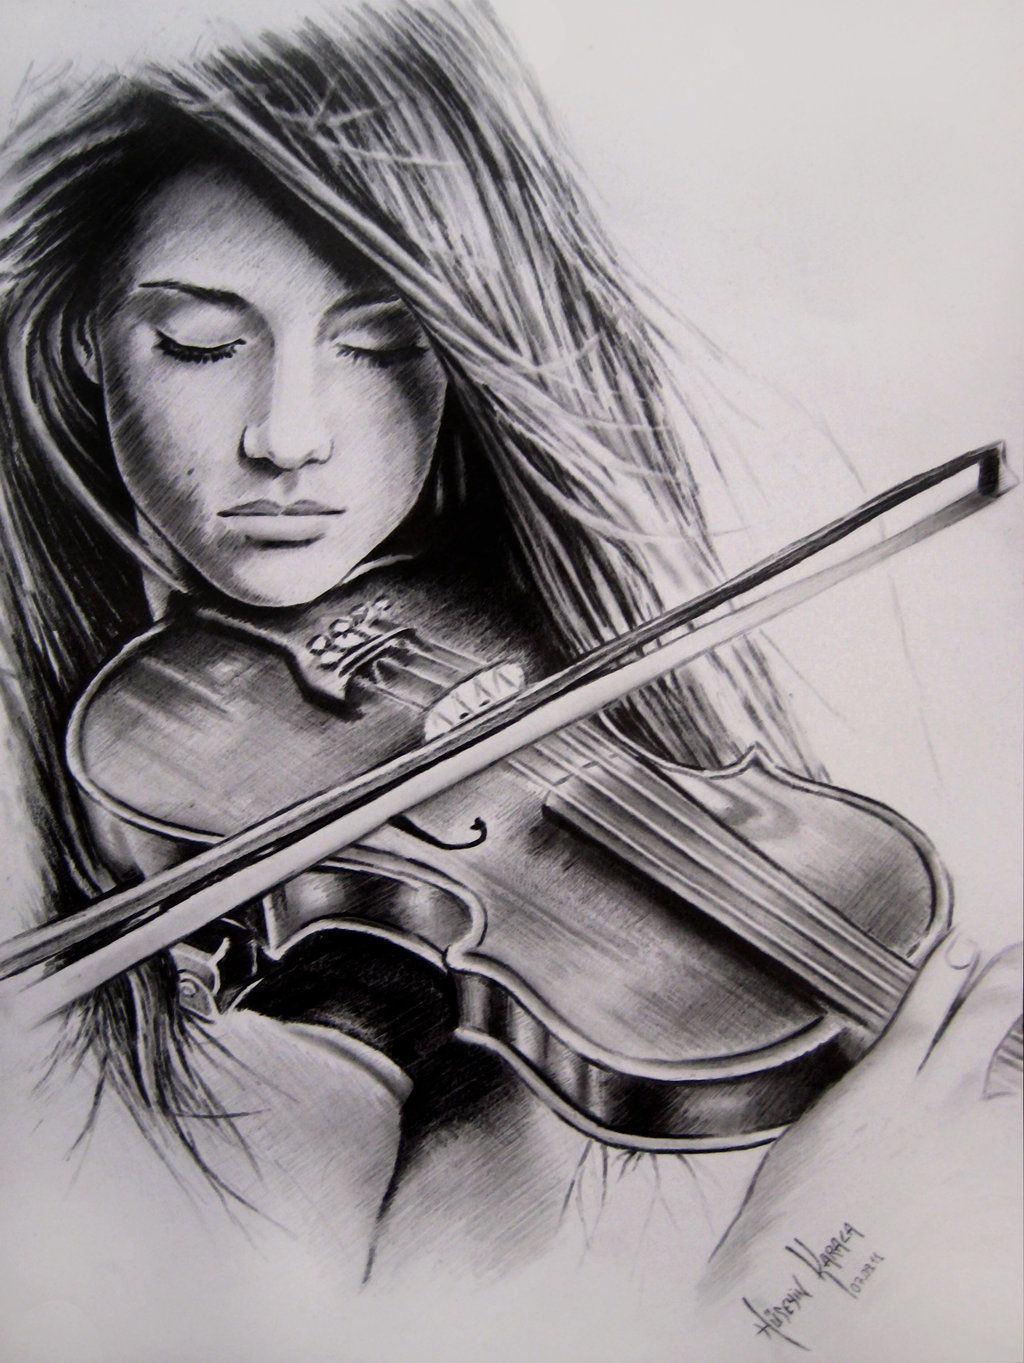 Girl playing violin sketch google search sketches for Nice drawing ideas